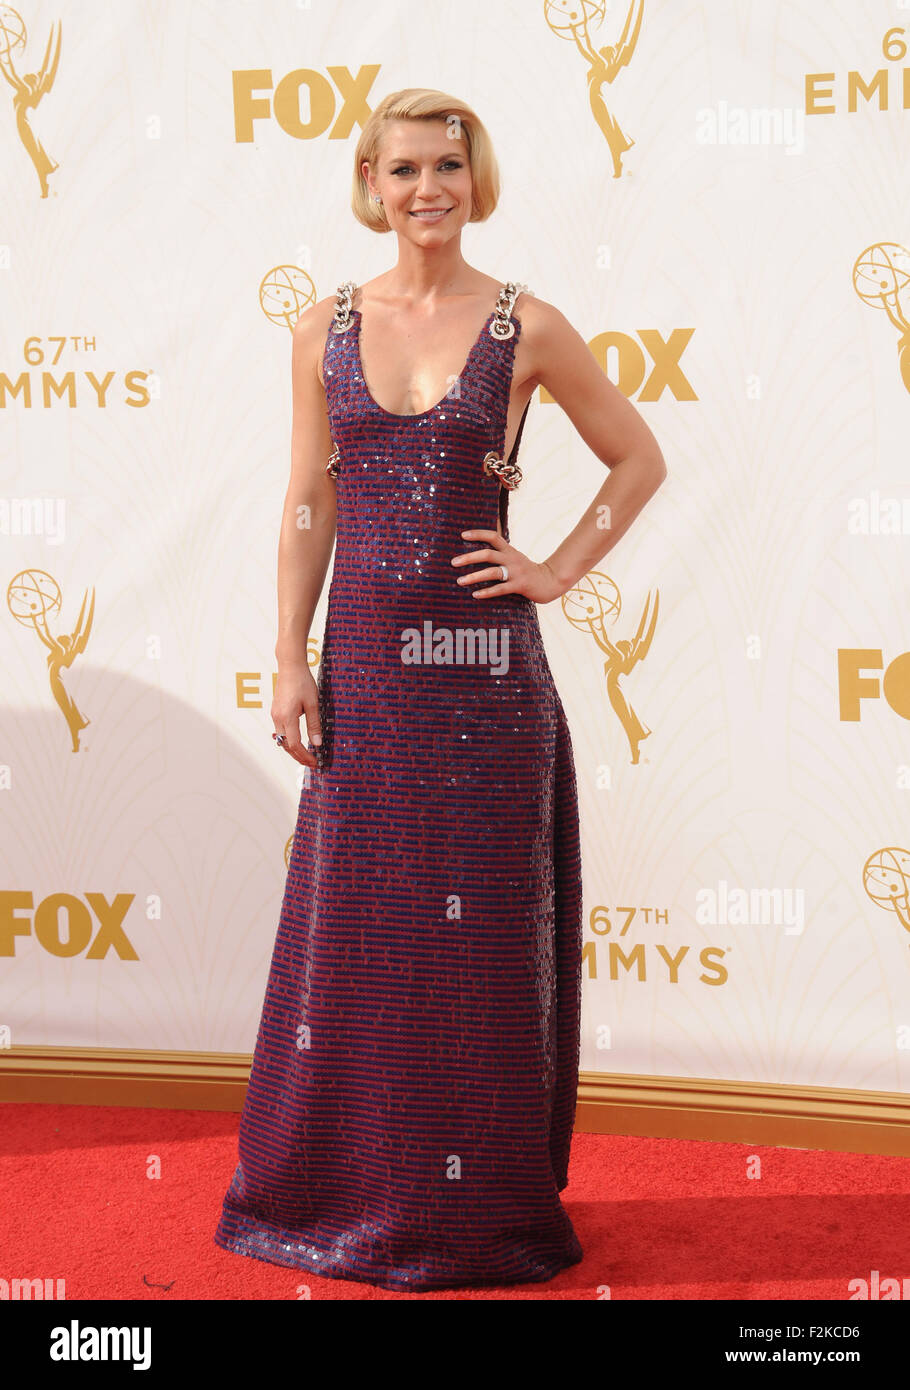 Los Angeles, California, USA. 20th Sep, 2015. Claire Danes attending the 67th Annual Primetime Emmy Awards - Arrivals - Stock Image